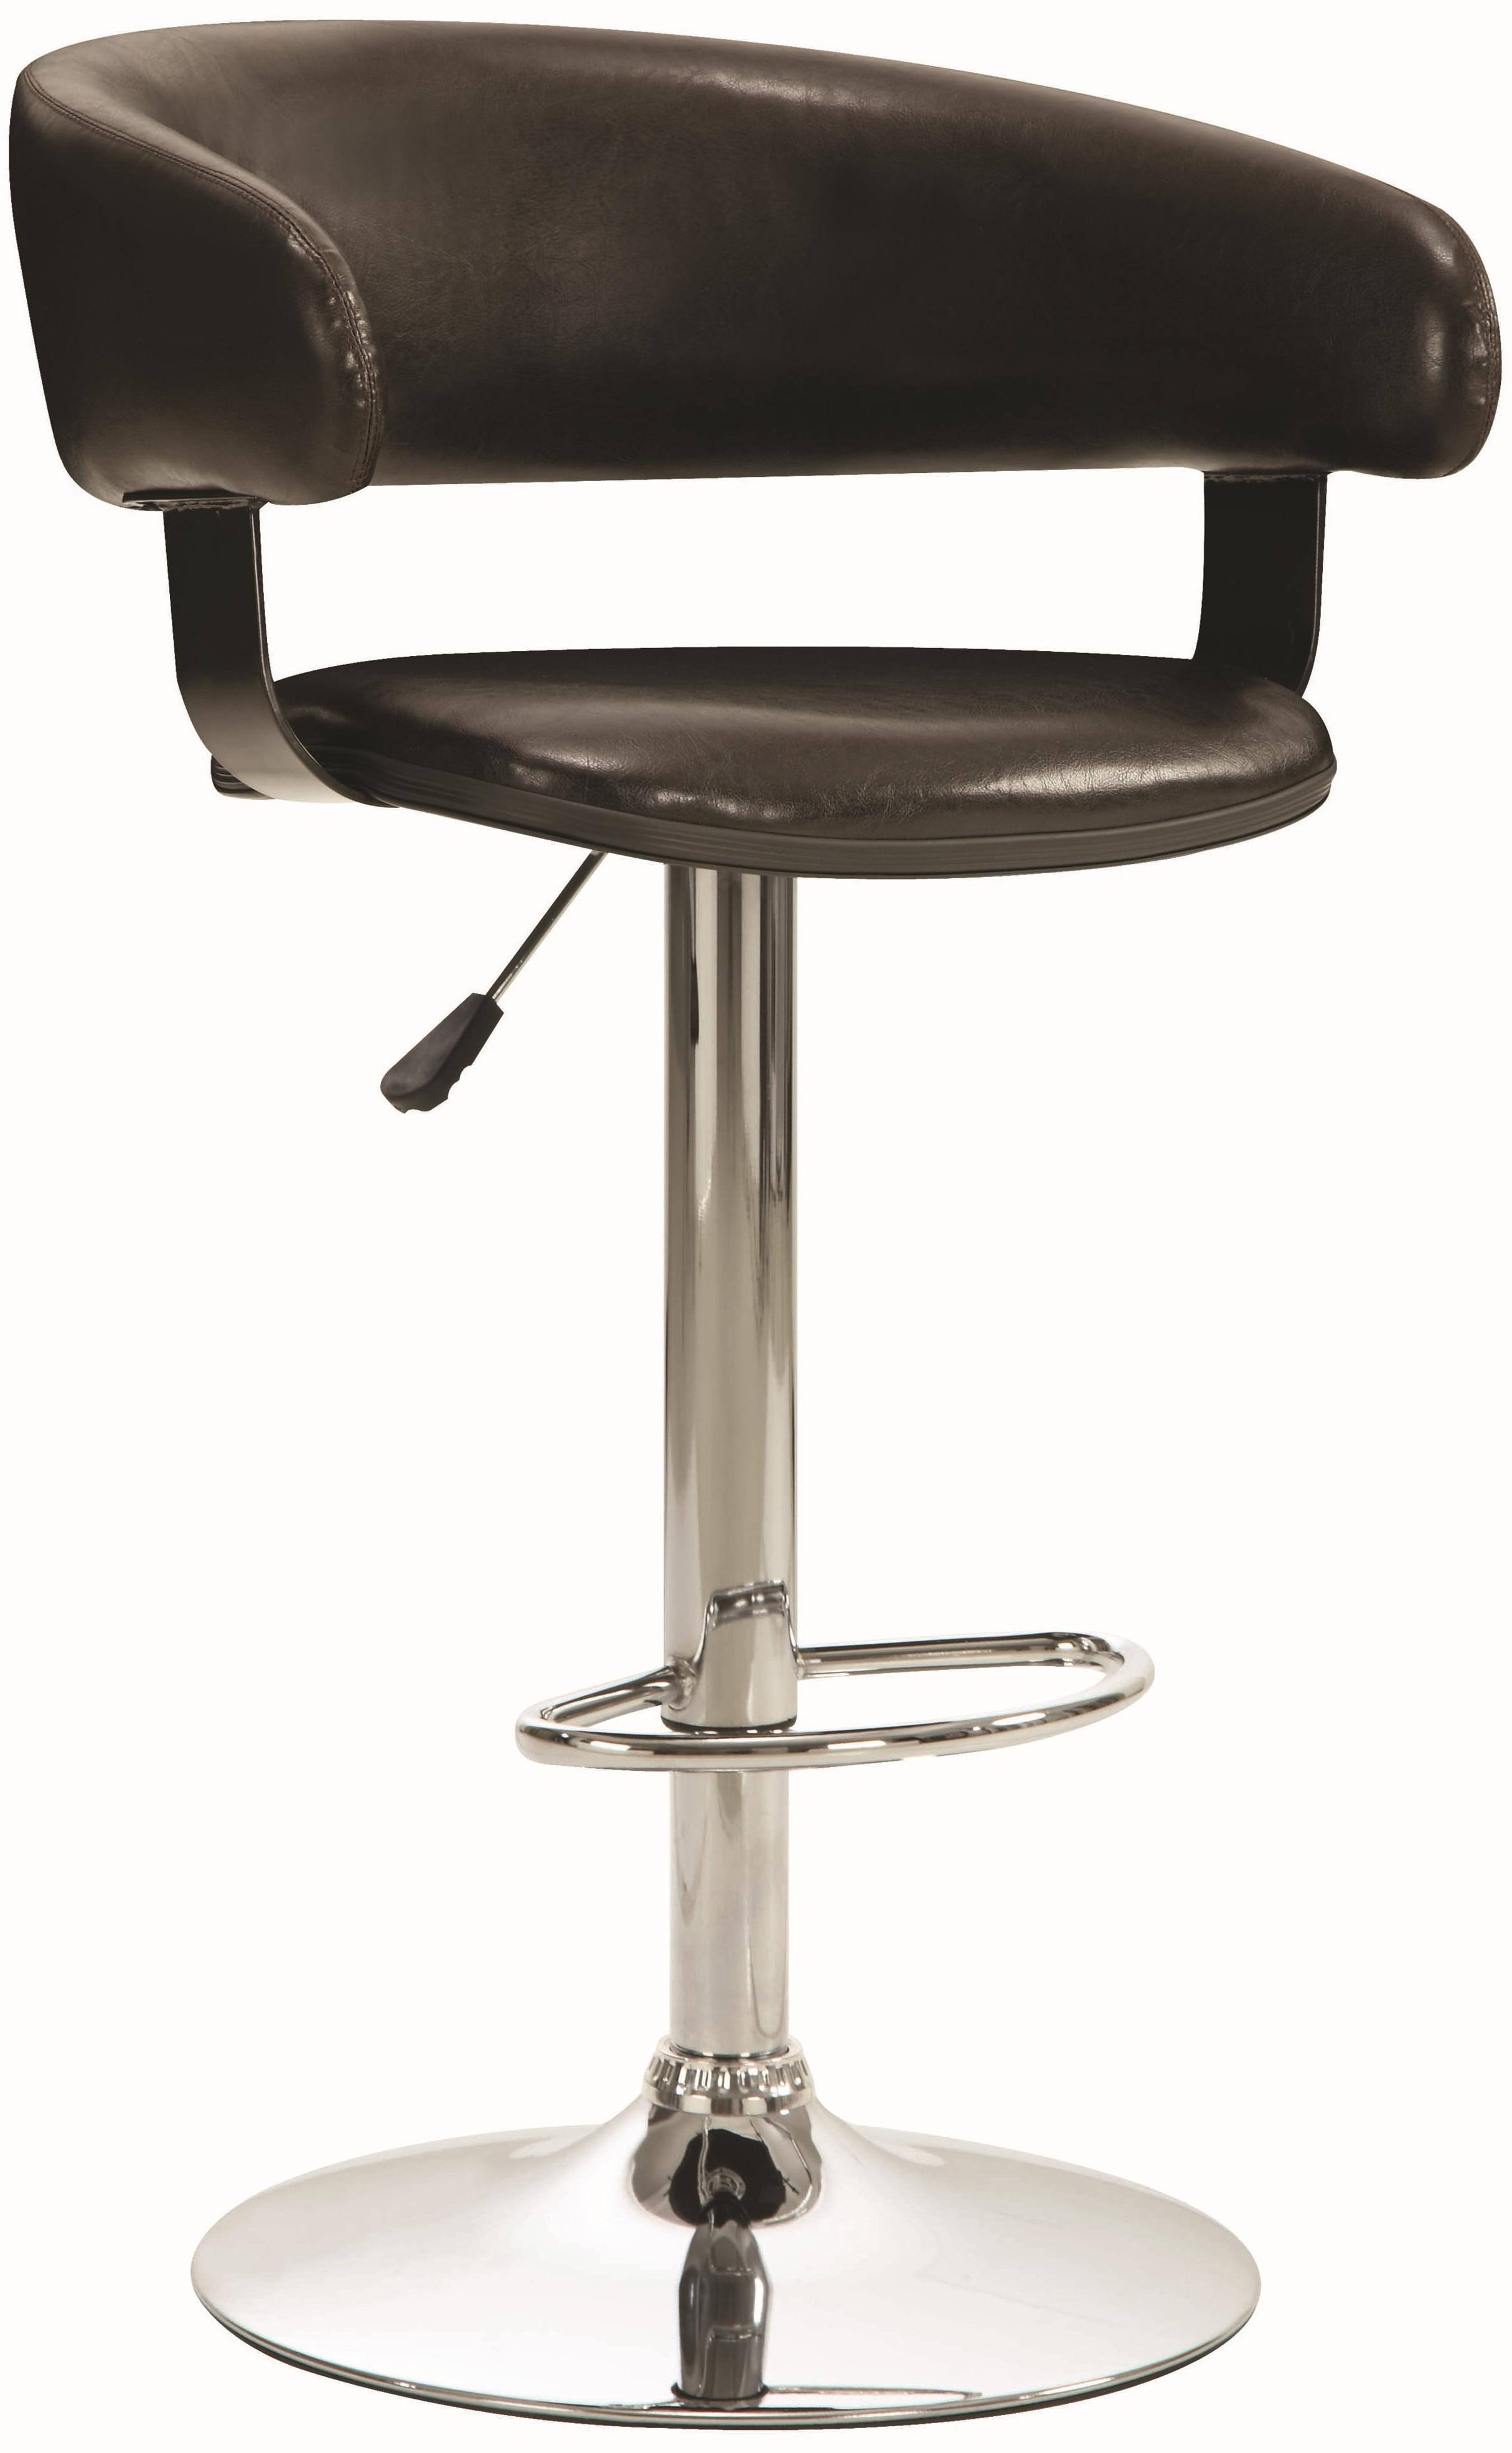 Coaster Dining Chairs and Bar Stools Bar Stool - Item Number: 122095